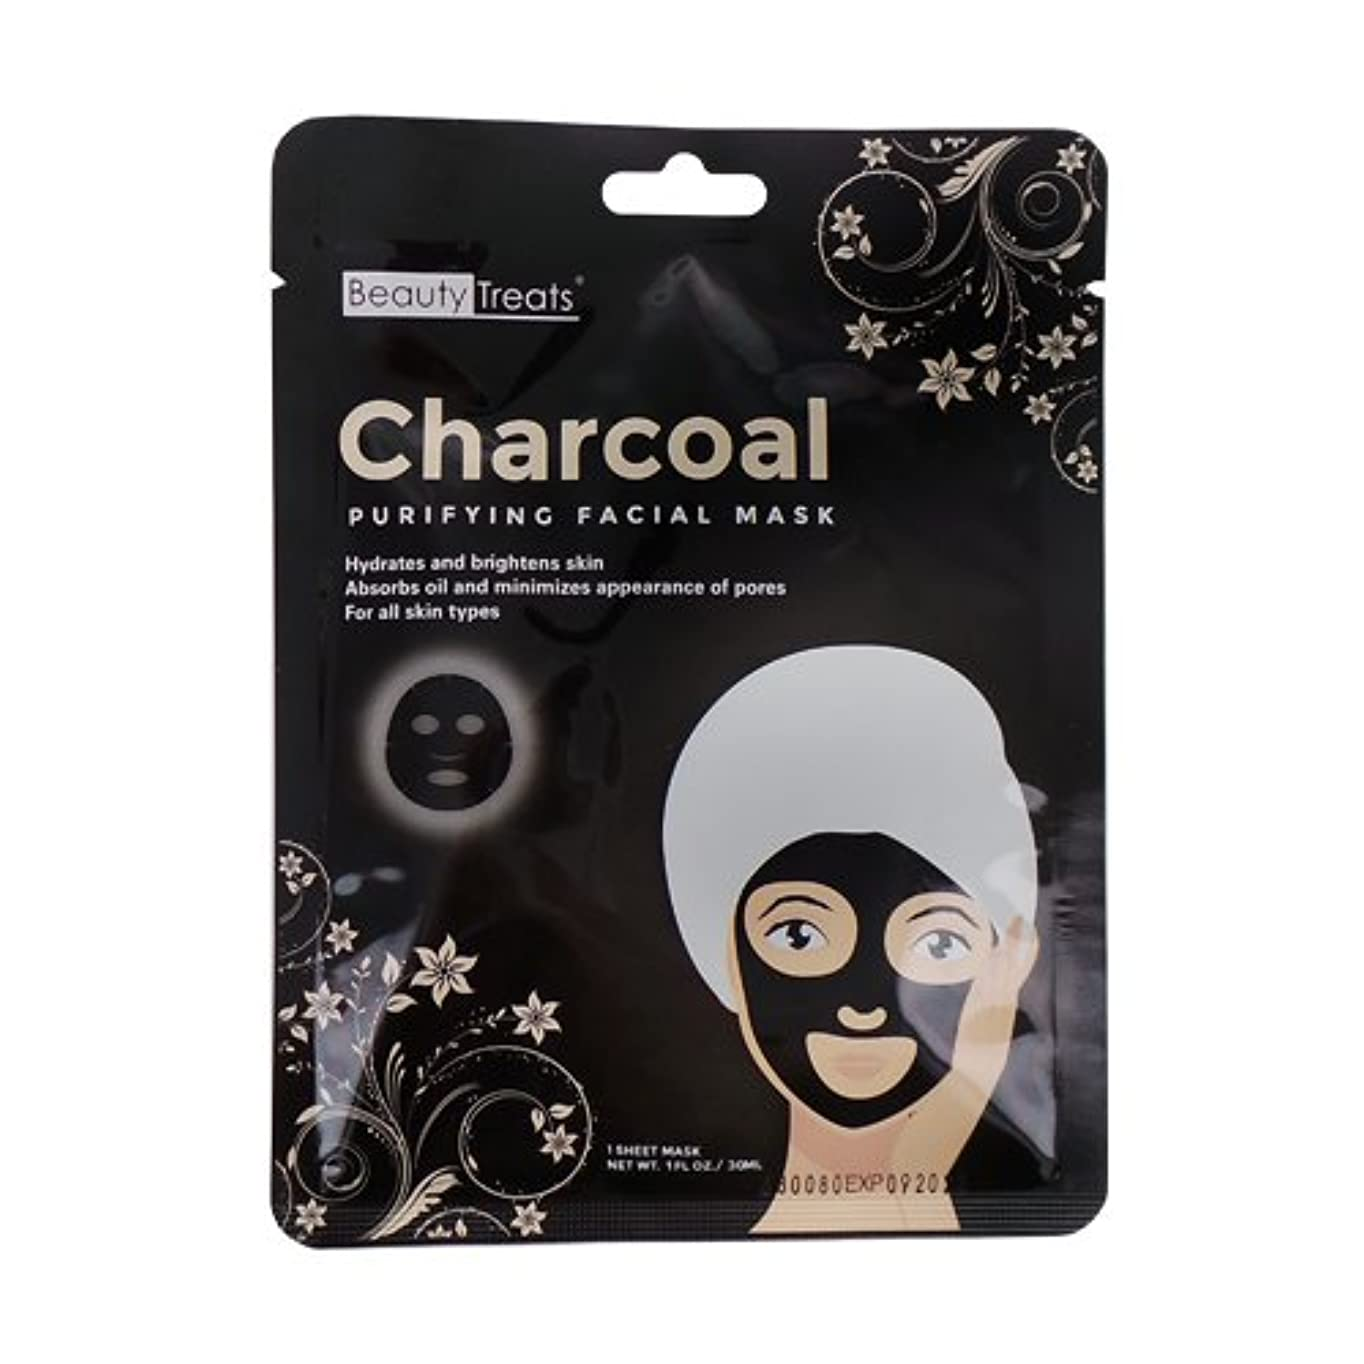 優遇印象ラビリンス(3 Pack) BEAUTY TREATS Charcoal Purifying Facial Mask (並行輸入品)